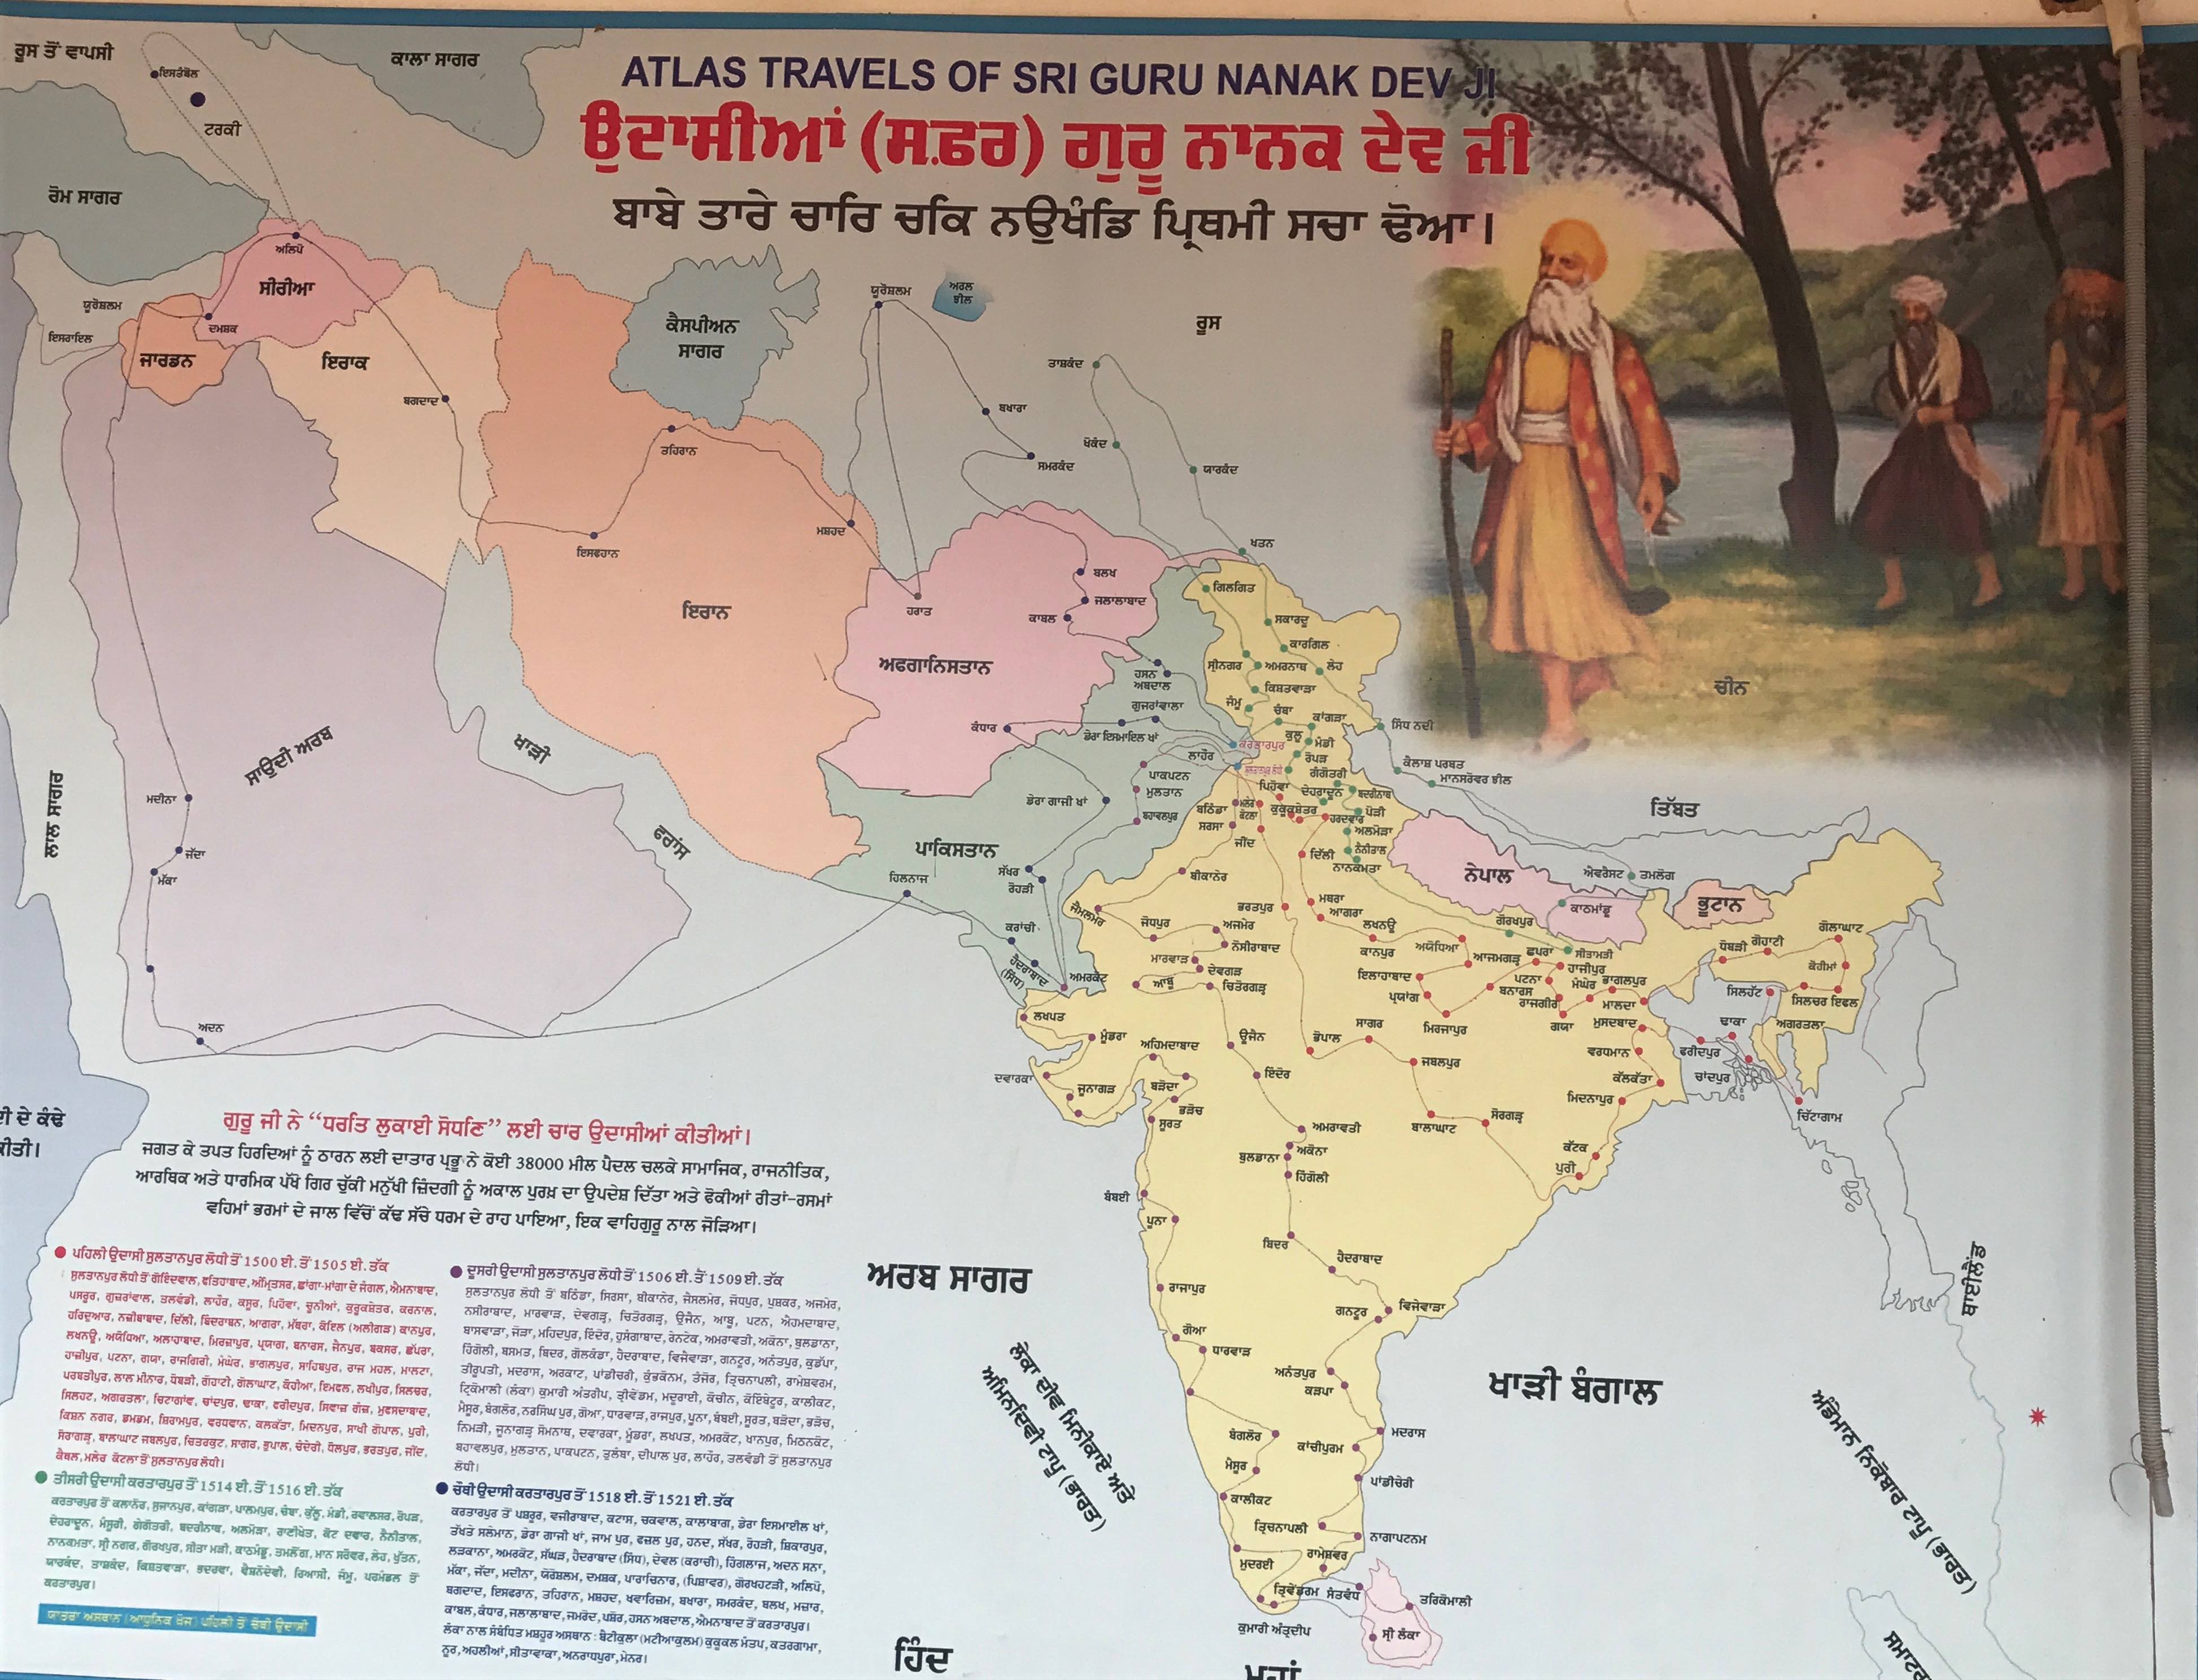 How Does Faith Travel? Thinking about Sikhi through Guru ... Map My Travels on nc travel map, create your own travel map, my trip to greece - part 2, my trips, pa travel map, make a travel map, sd travel map, my trip to greece - part 1, travel map app on facebook, world travel map,